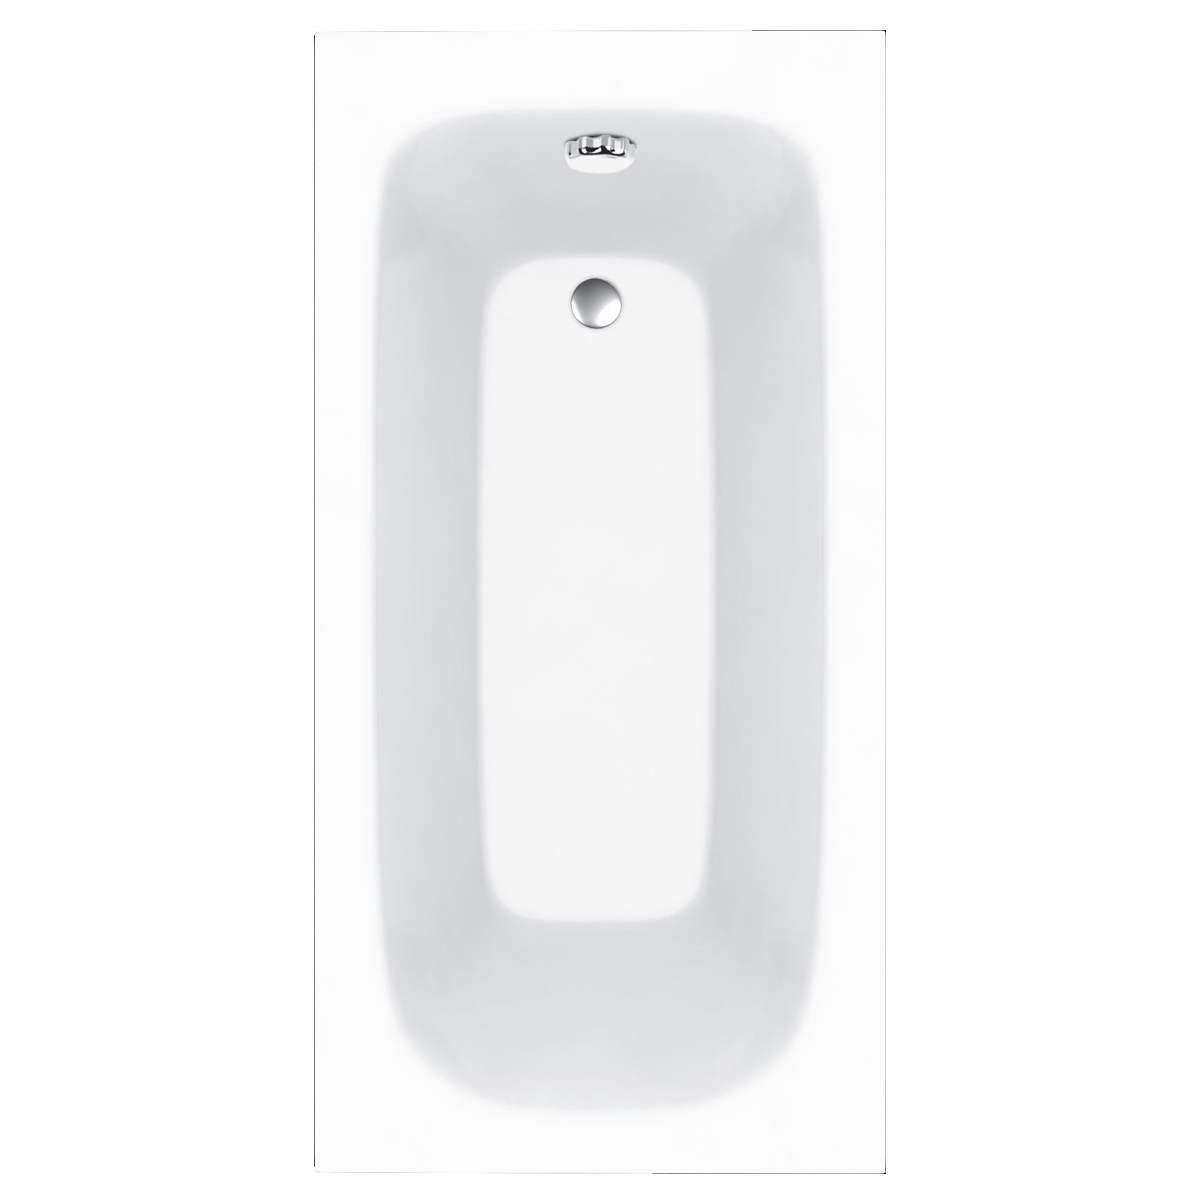 K-Vit G4K 1400 x 700 Contract Bath